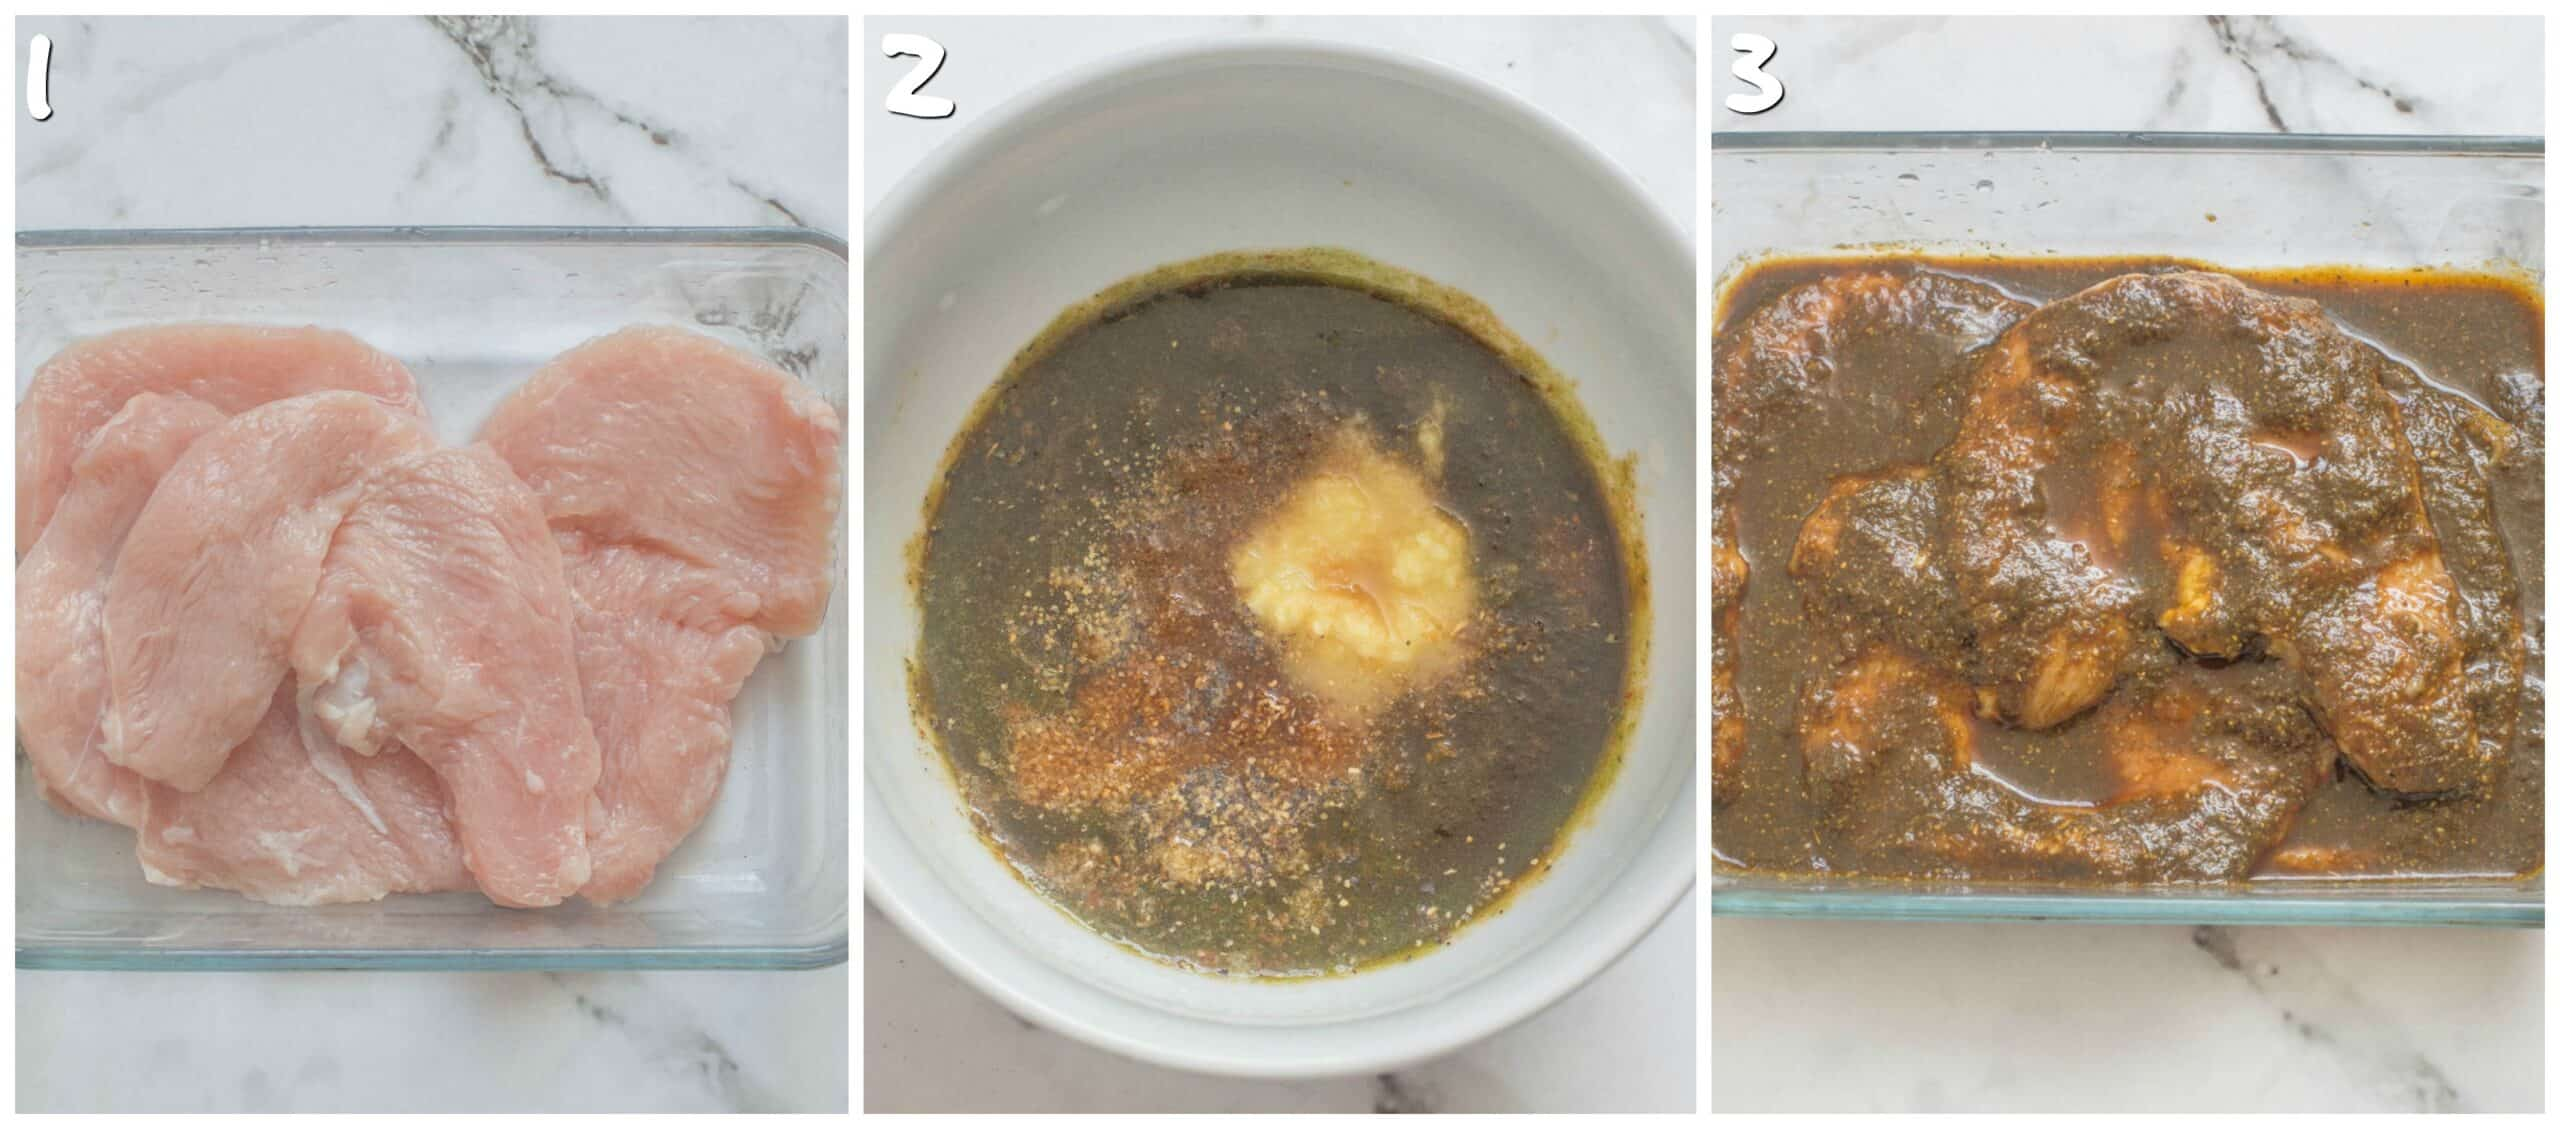 steps 1-3 marinating the turkey steaks